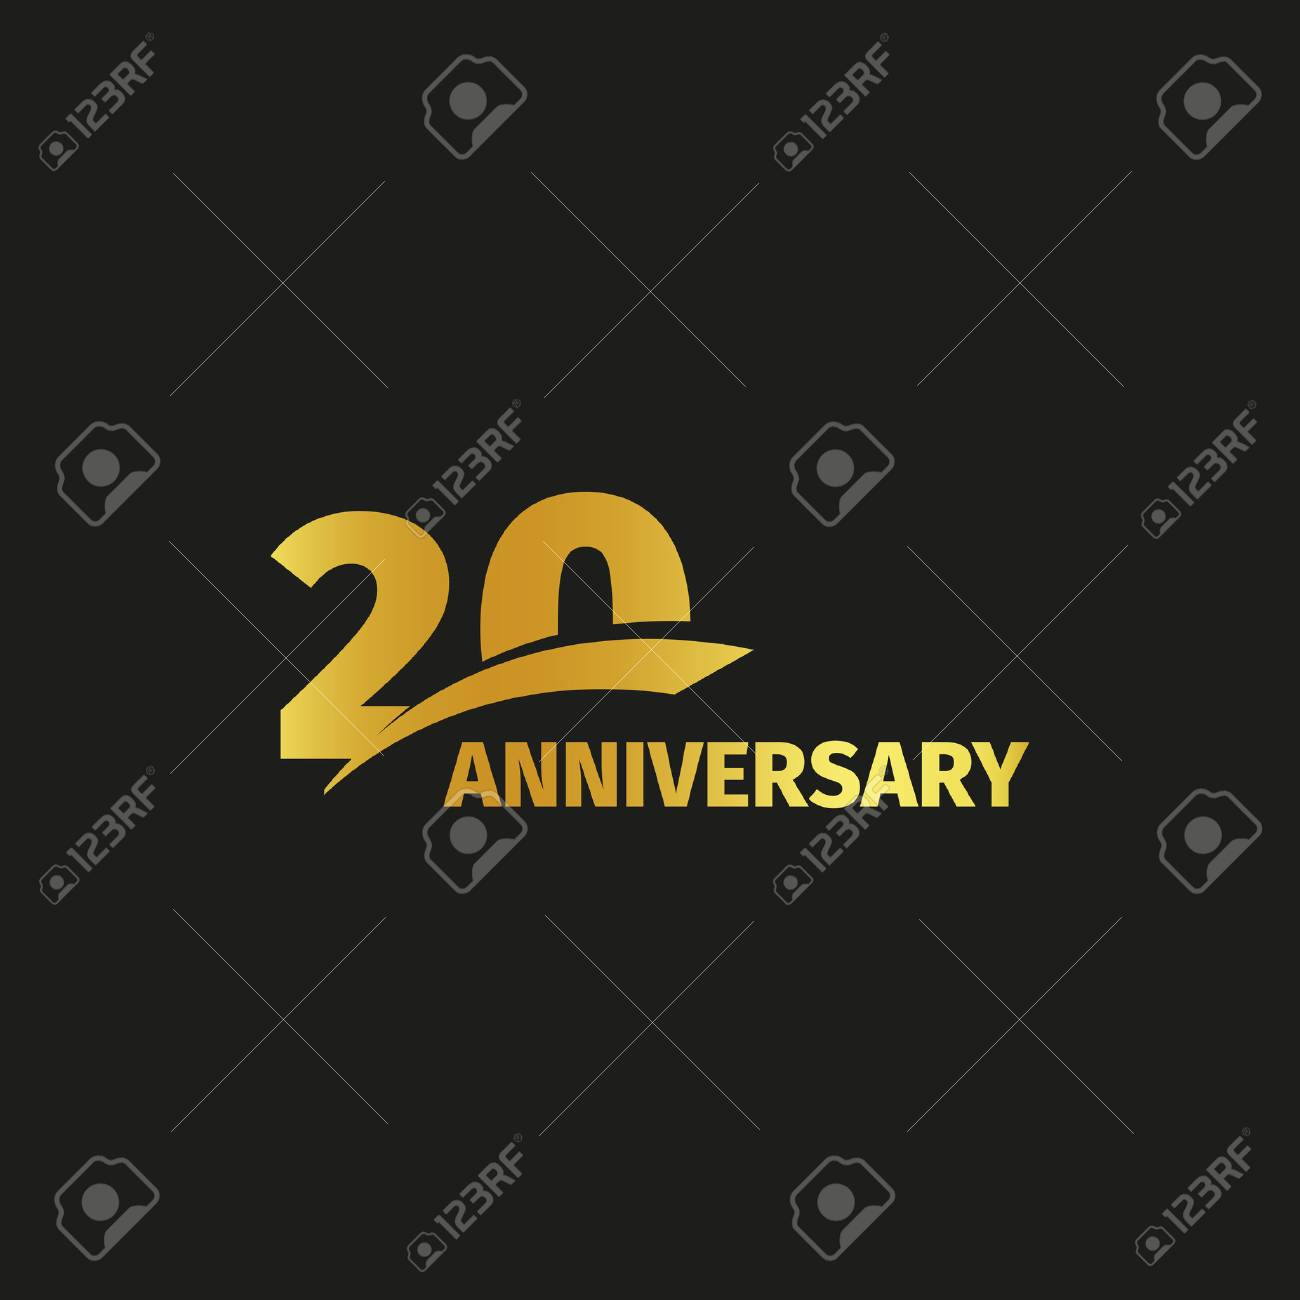 Isolated Abstract Golden 20th Anniversary Logo On Black Background